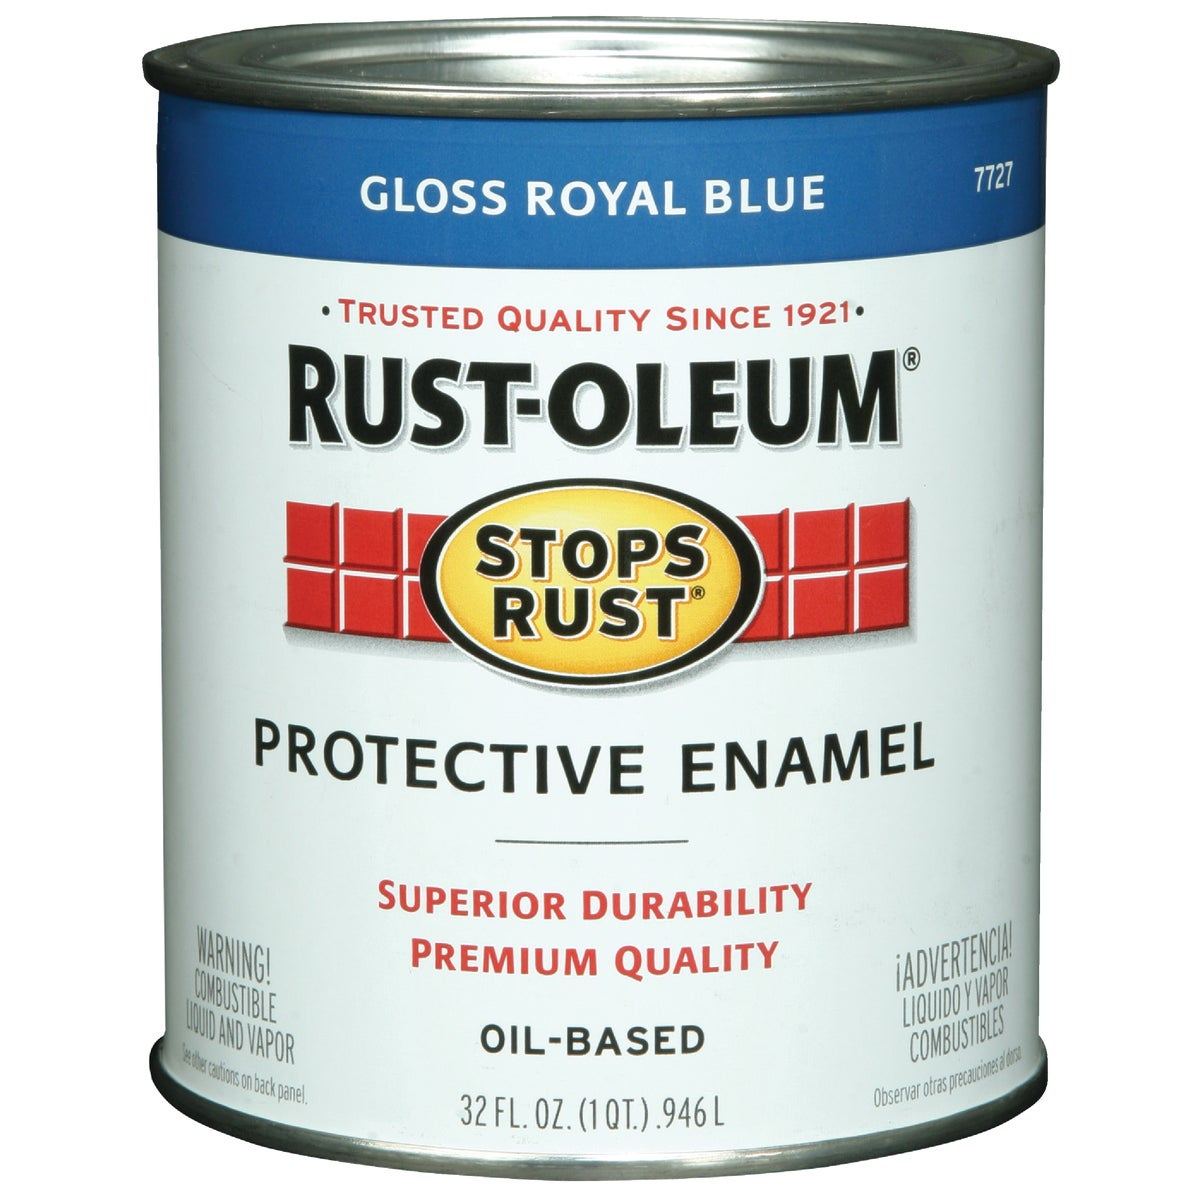 ROYAL BLUE ENAMEL - 7727-502 by Rustoleum